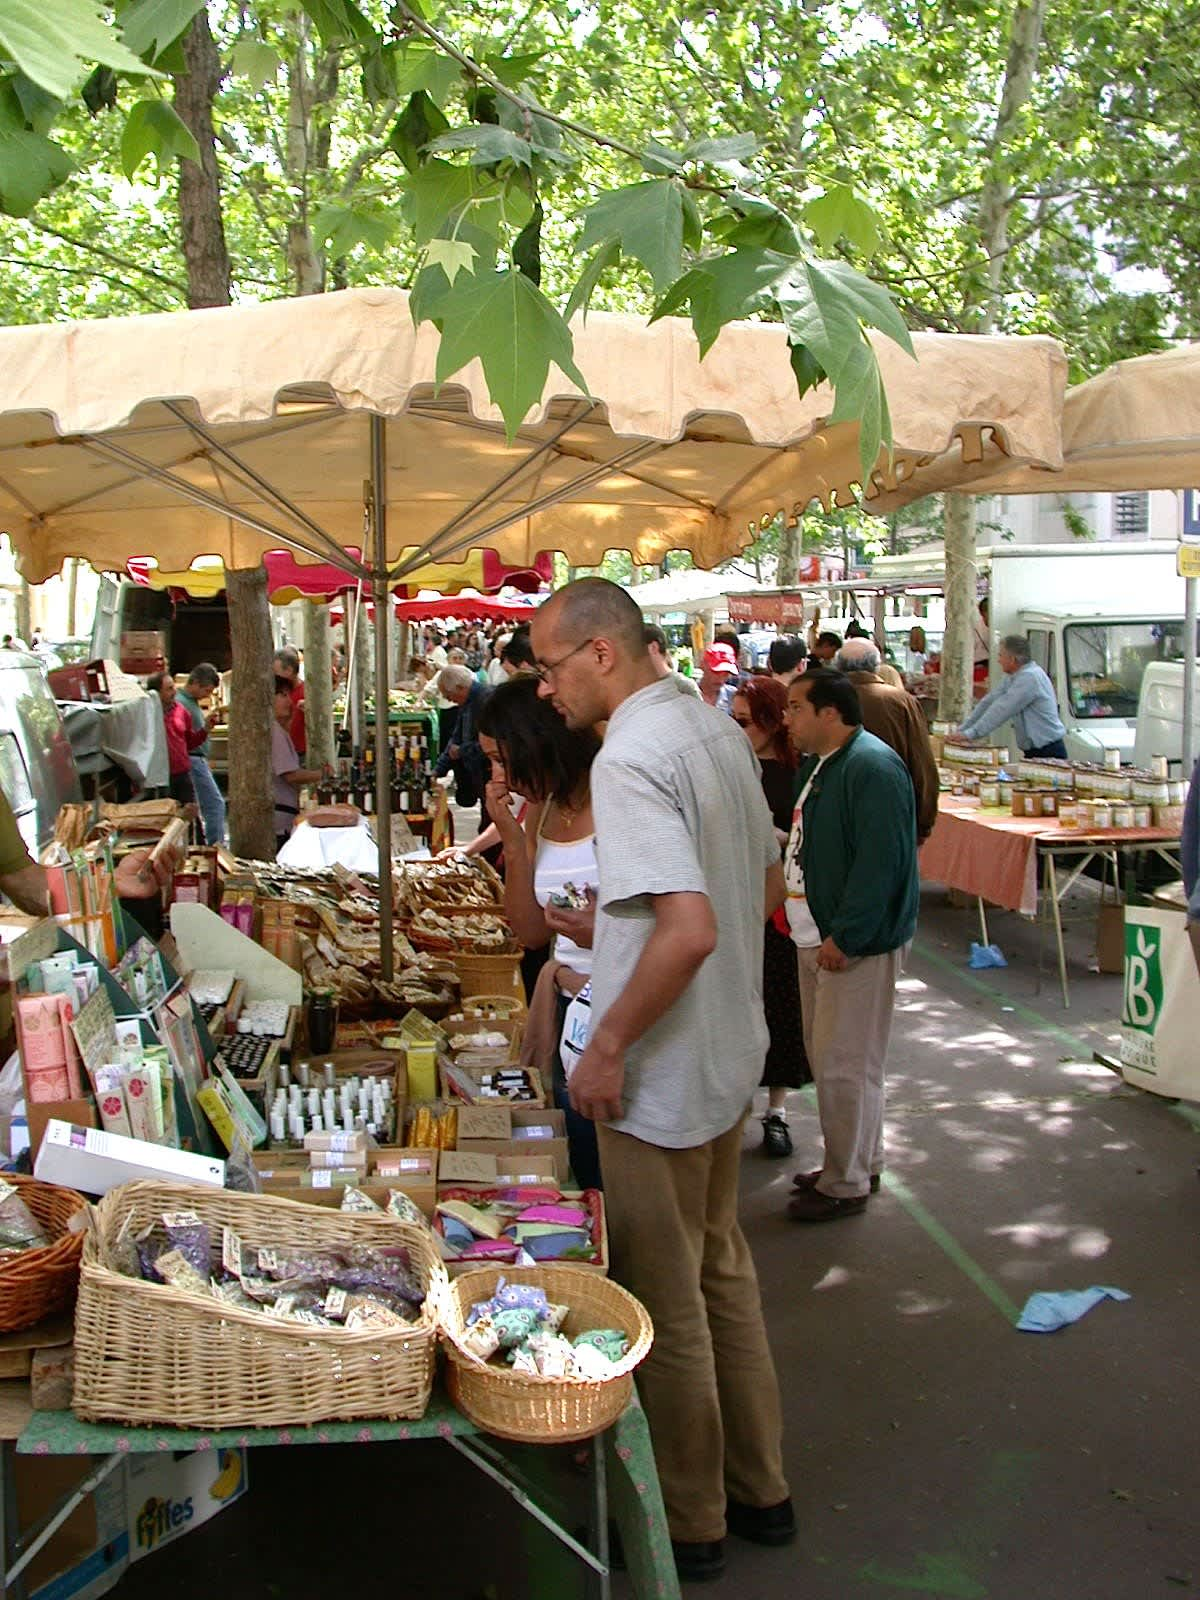 Man Picking Produce at a French Farmers Market